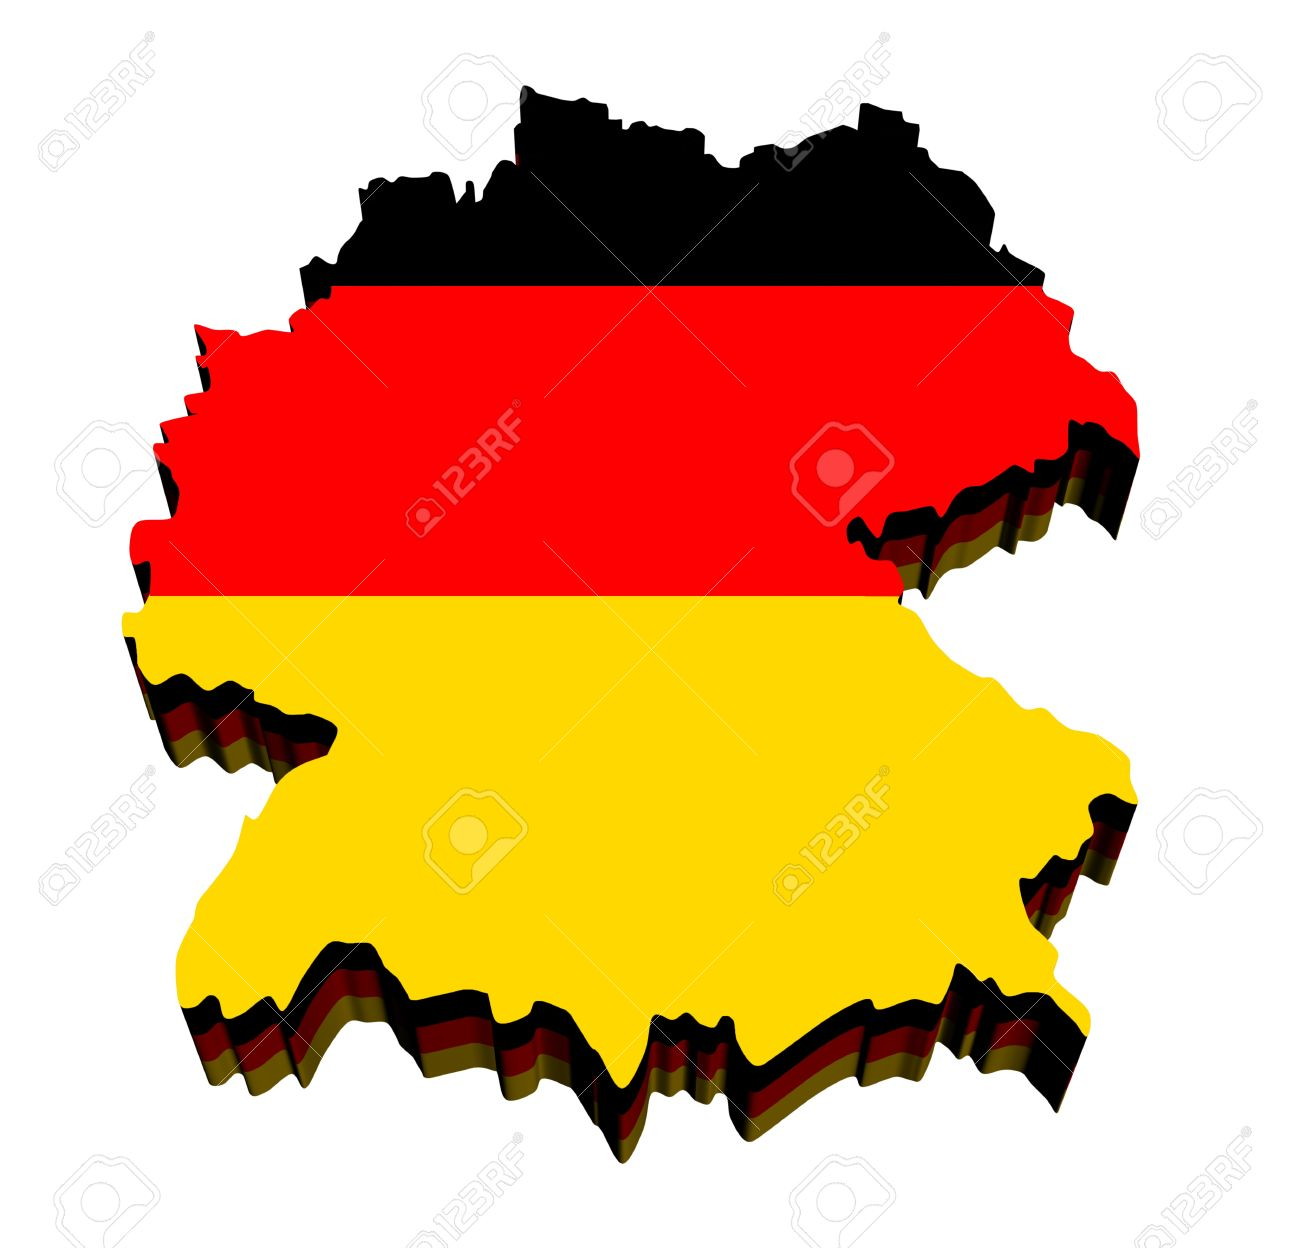 Map Of Germany Against White Background Close Up Stock Photo - Germany map cartoon